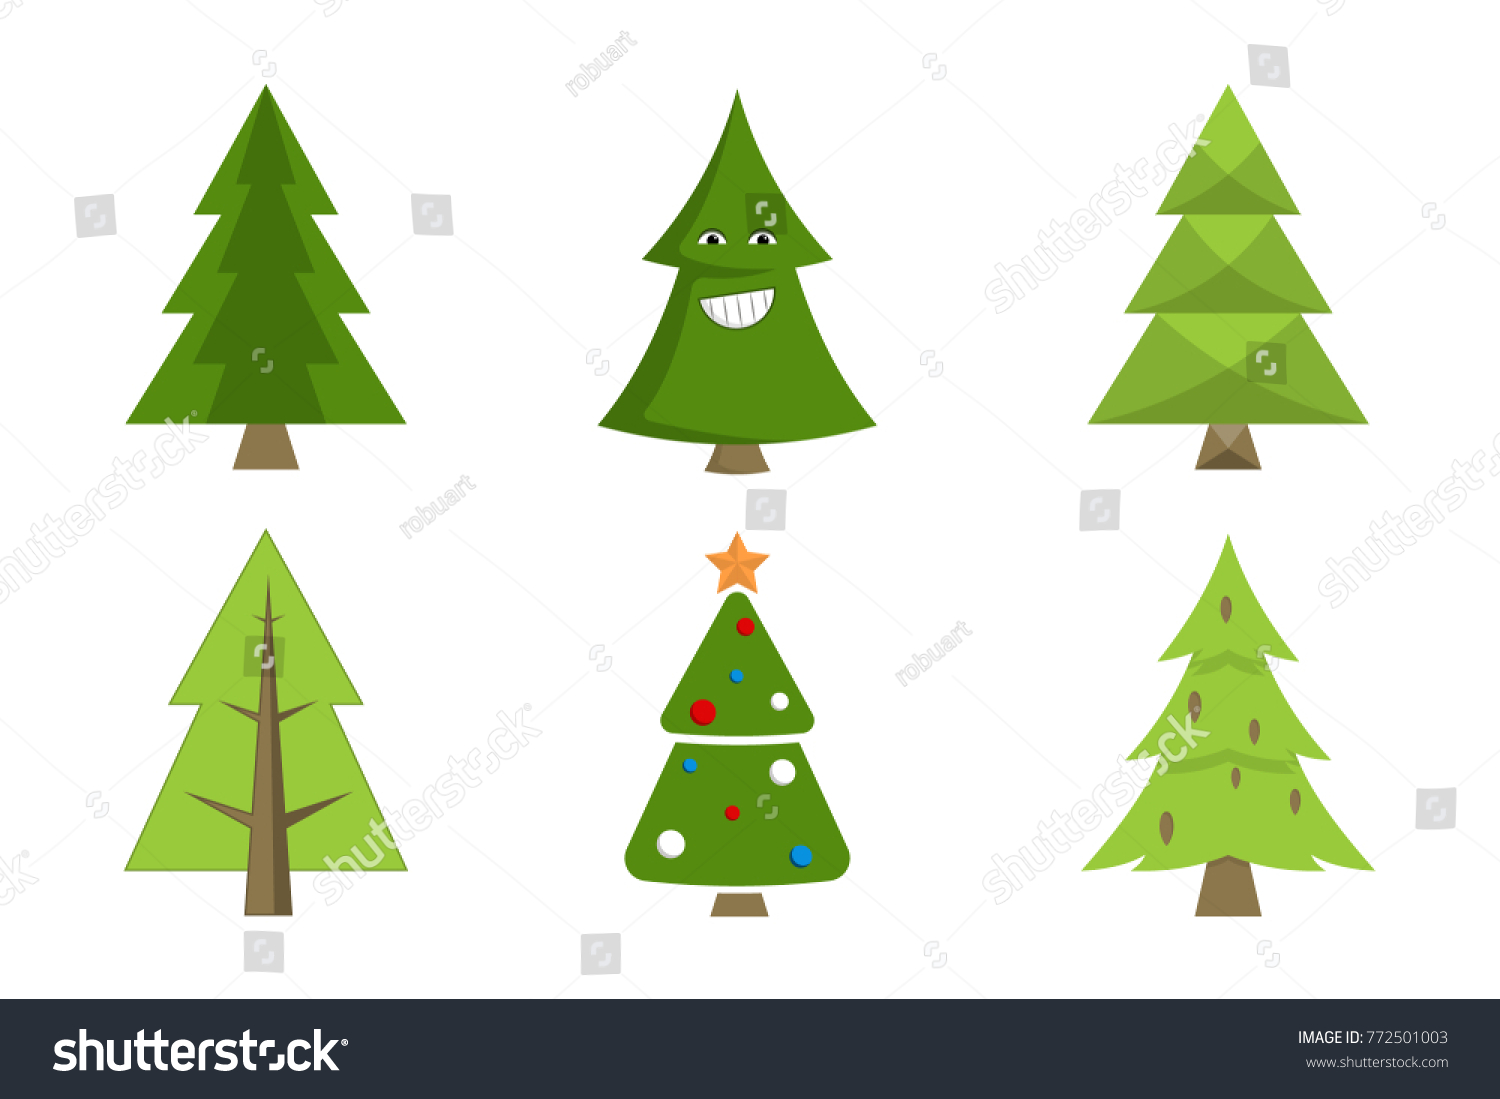 Christmas Tree Collection Spruce Icons Decorative Stock